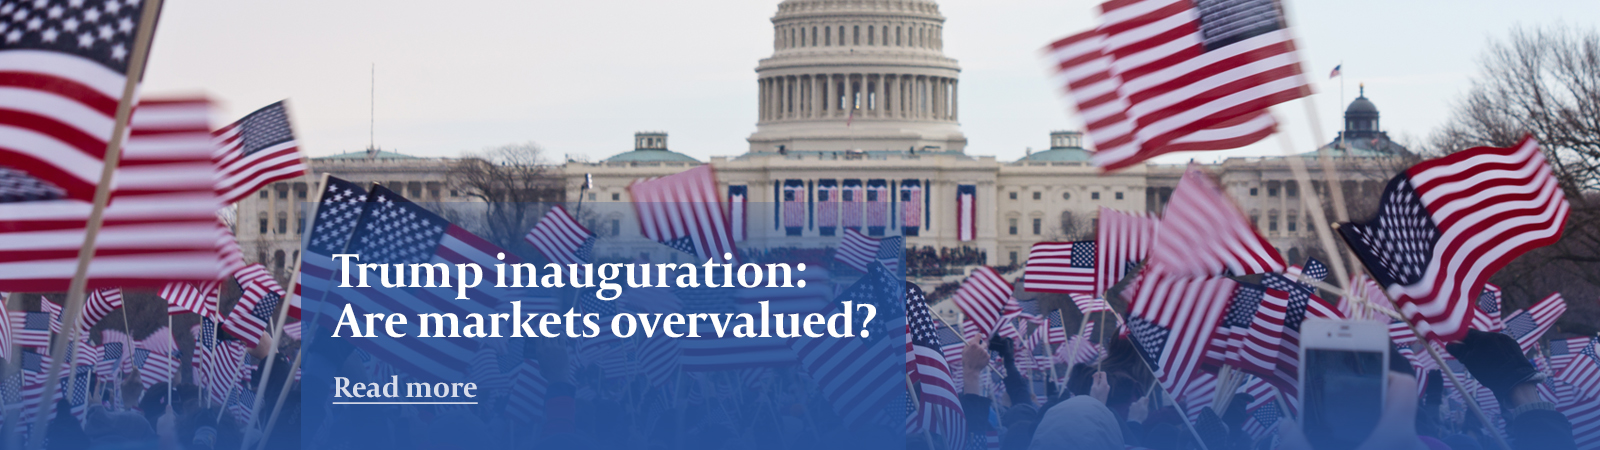 Trump inauguration: market overview